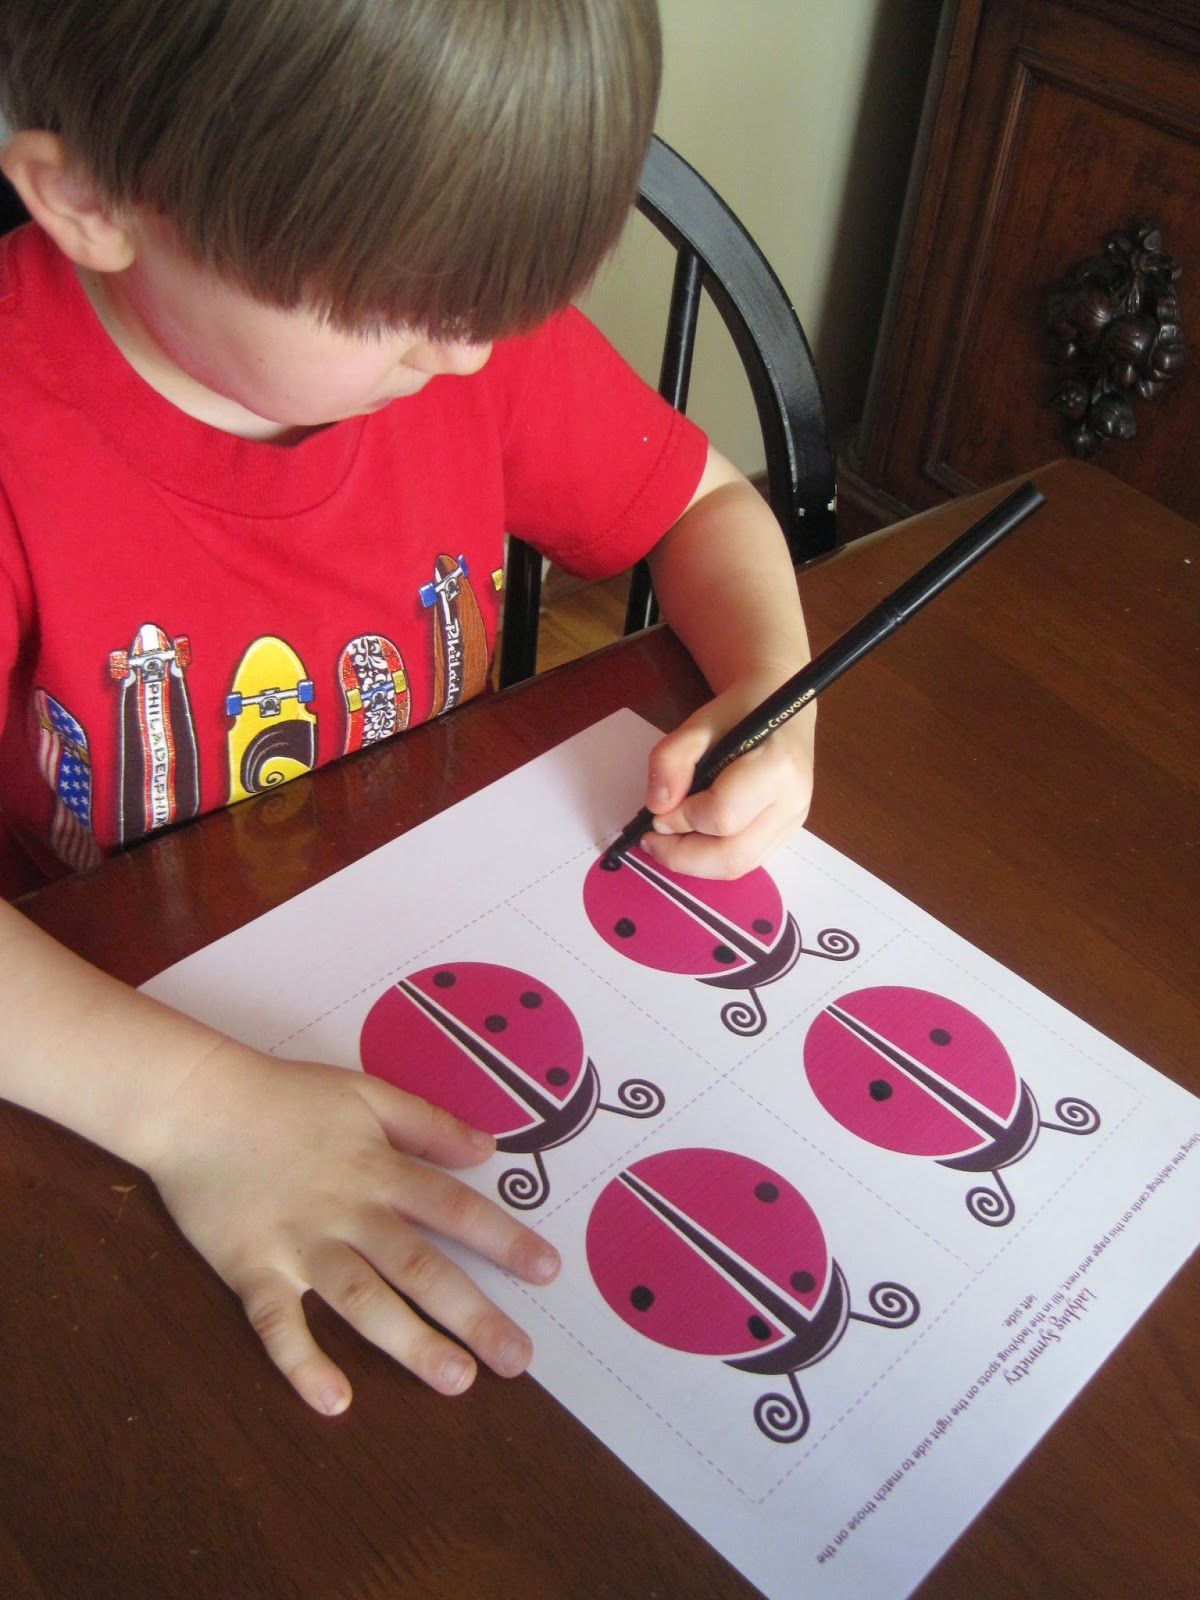 Free Printable Worksheets A Guest Post By Christy Gould